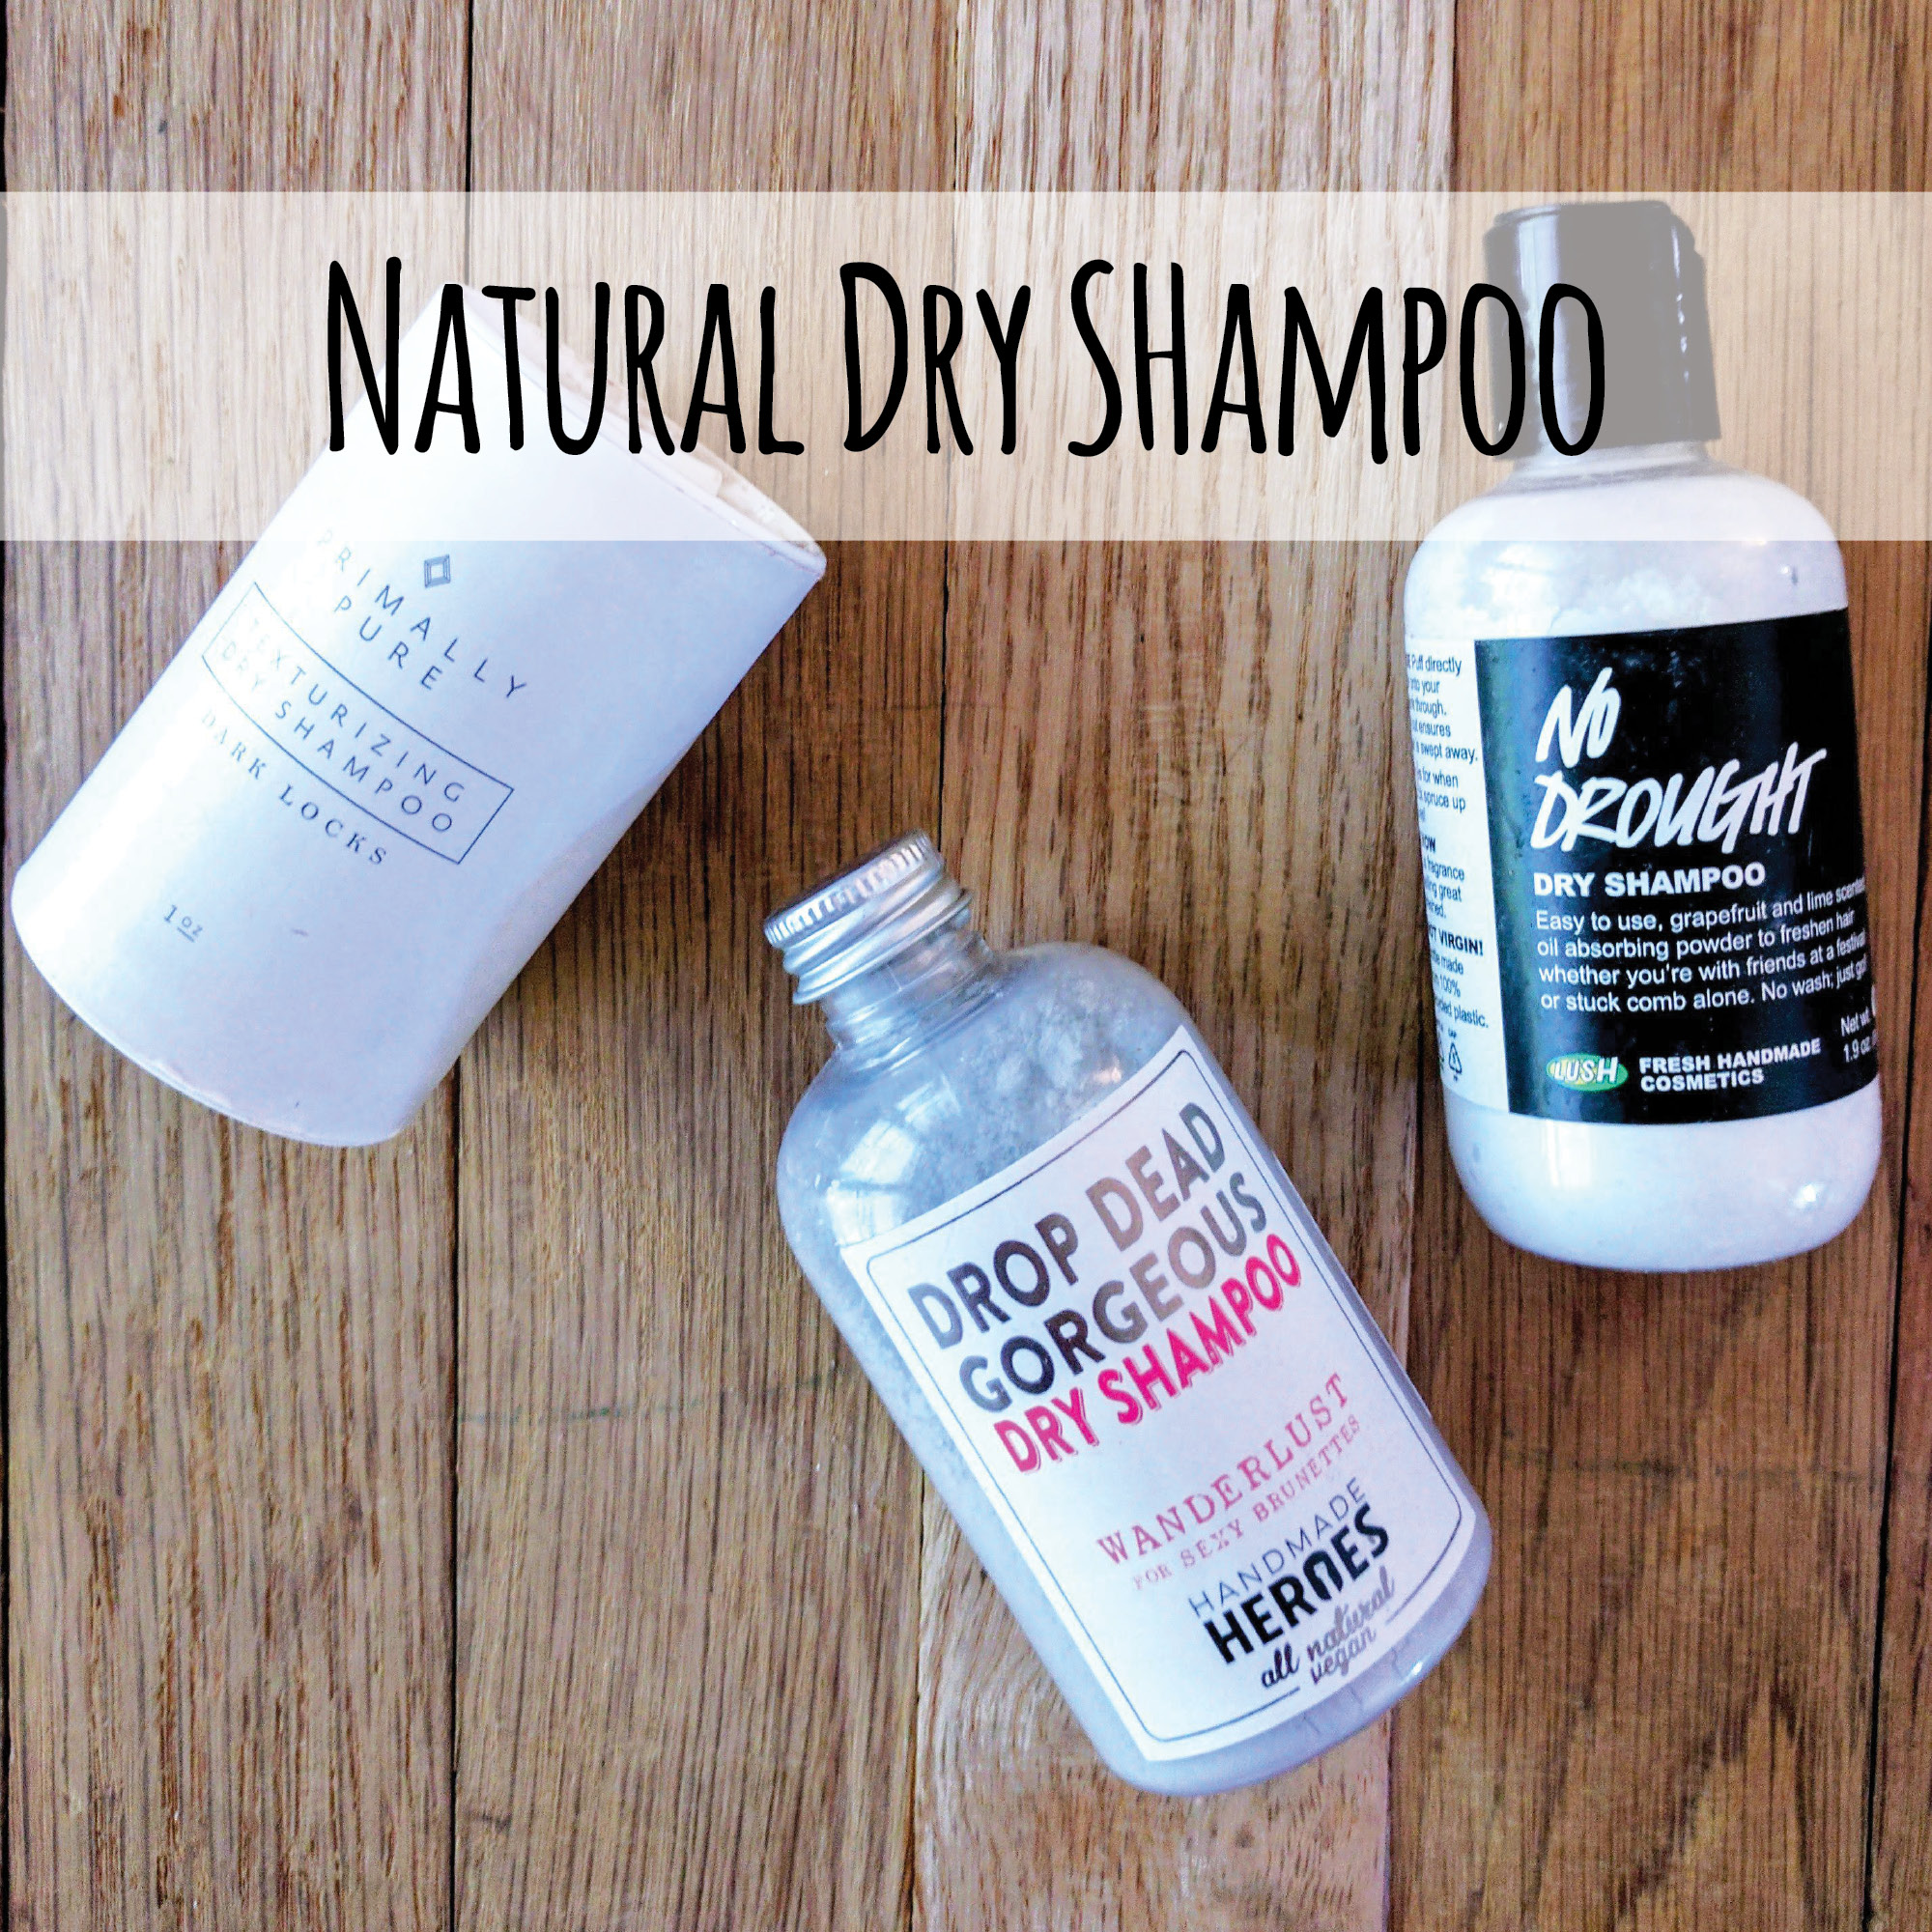 Need help kicking the aerosol can? See the reviews of the top natural dry shampoos.